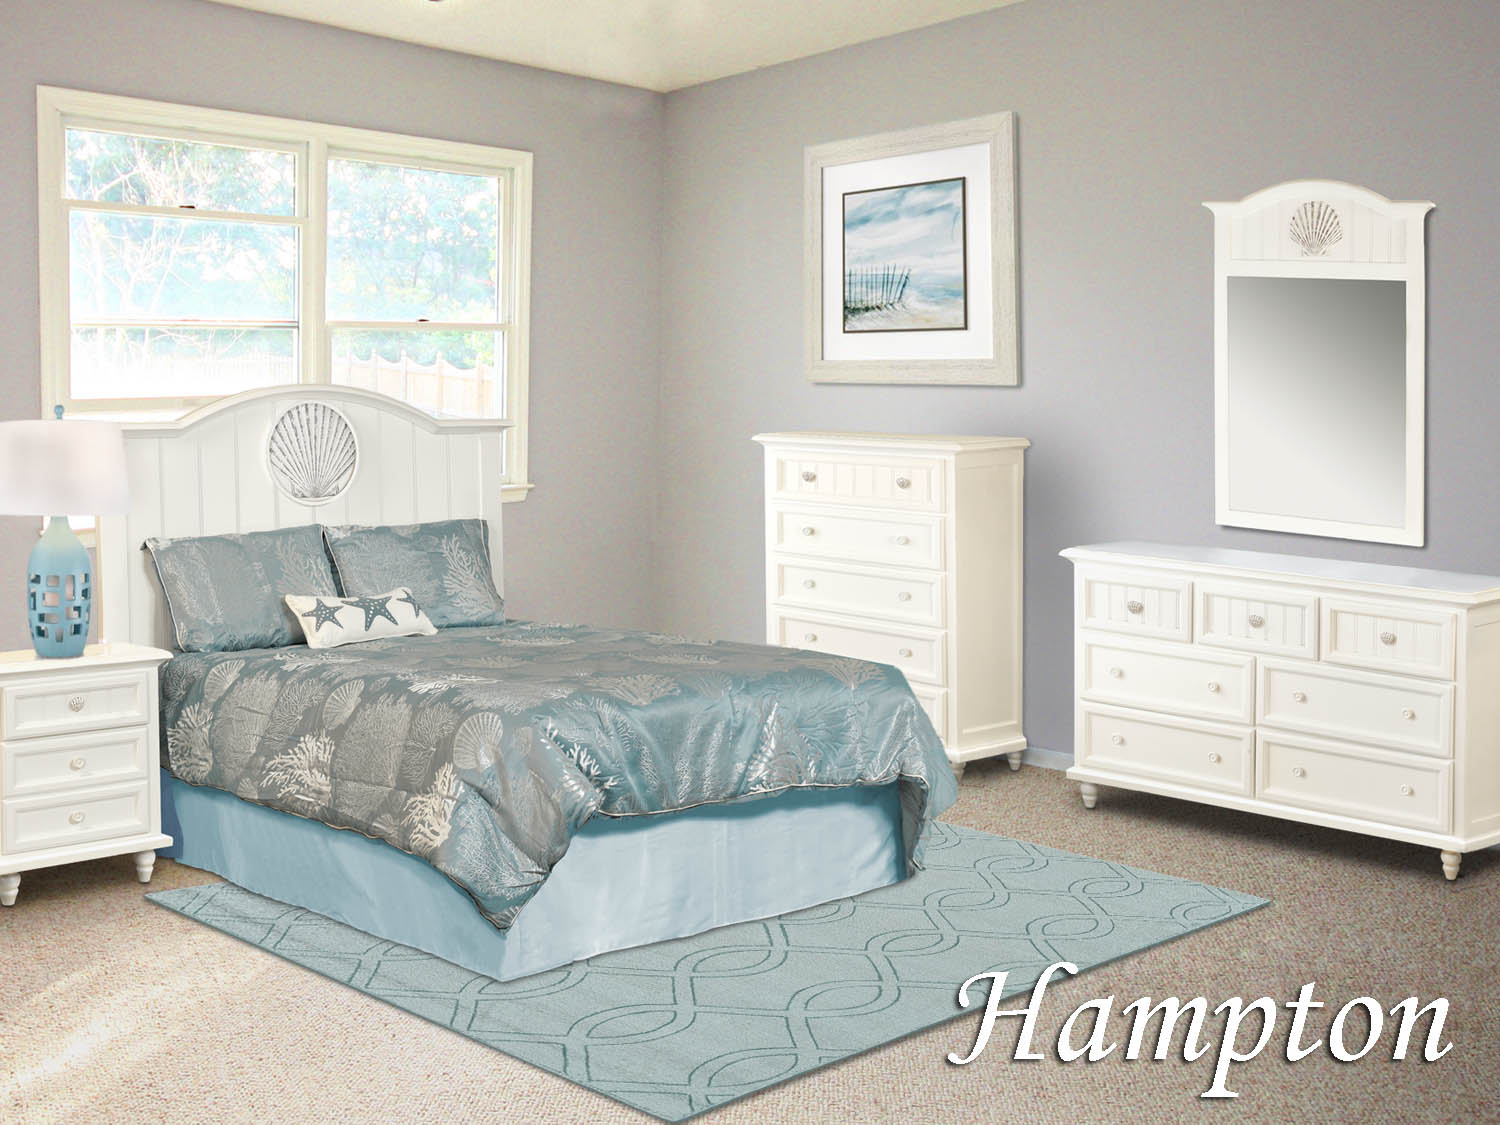 Hampton, Bedroom, white, Youth, kids, guest, master, dresser, mirror, chest, night stand, headboard, coastal, seaside, Barbo's Furniture ,